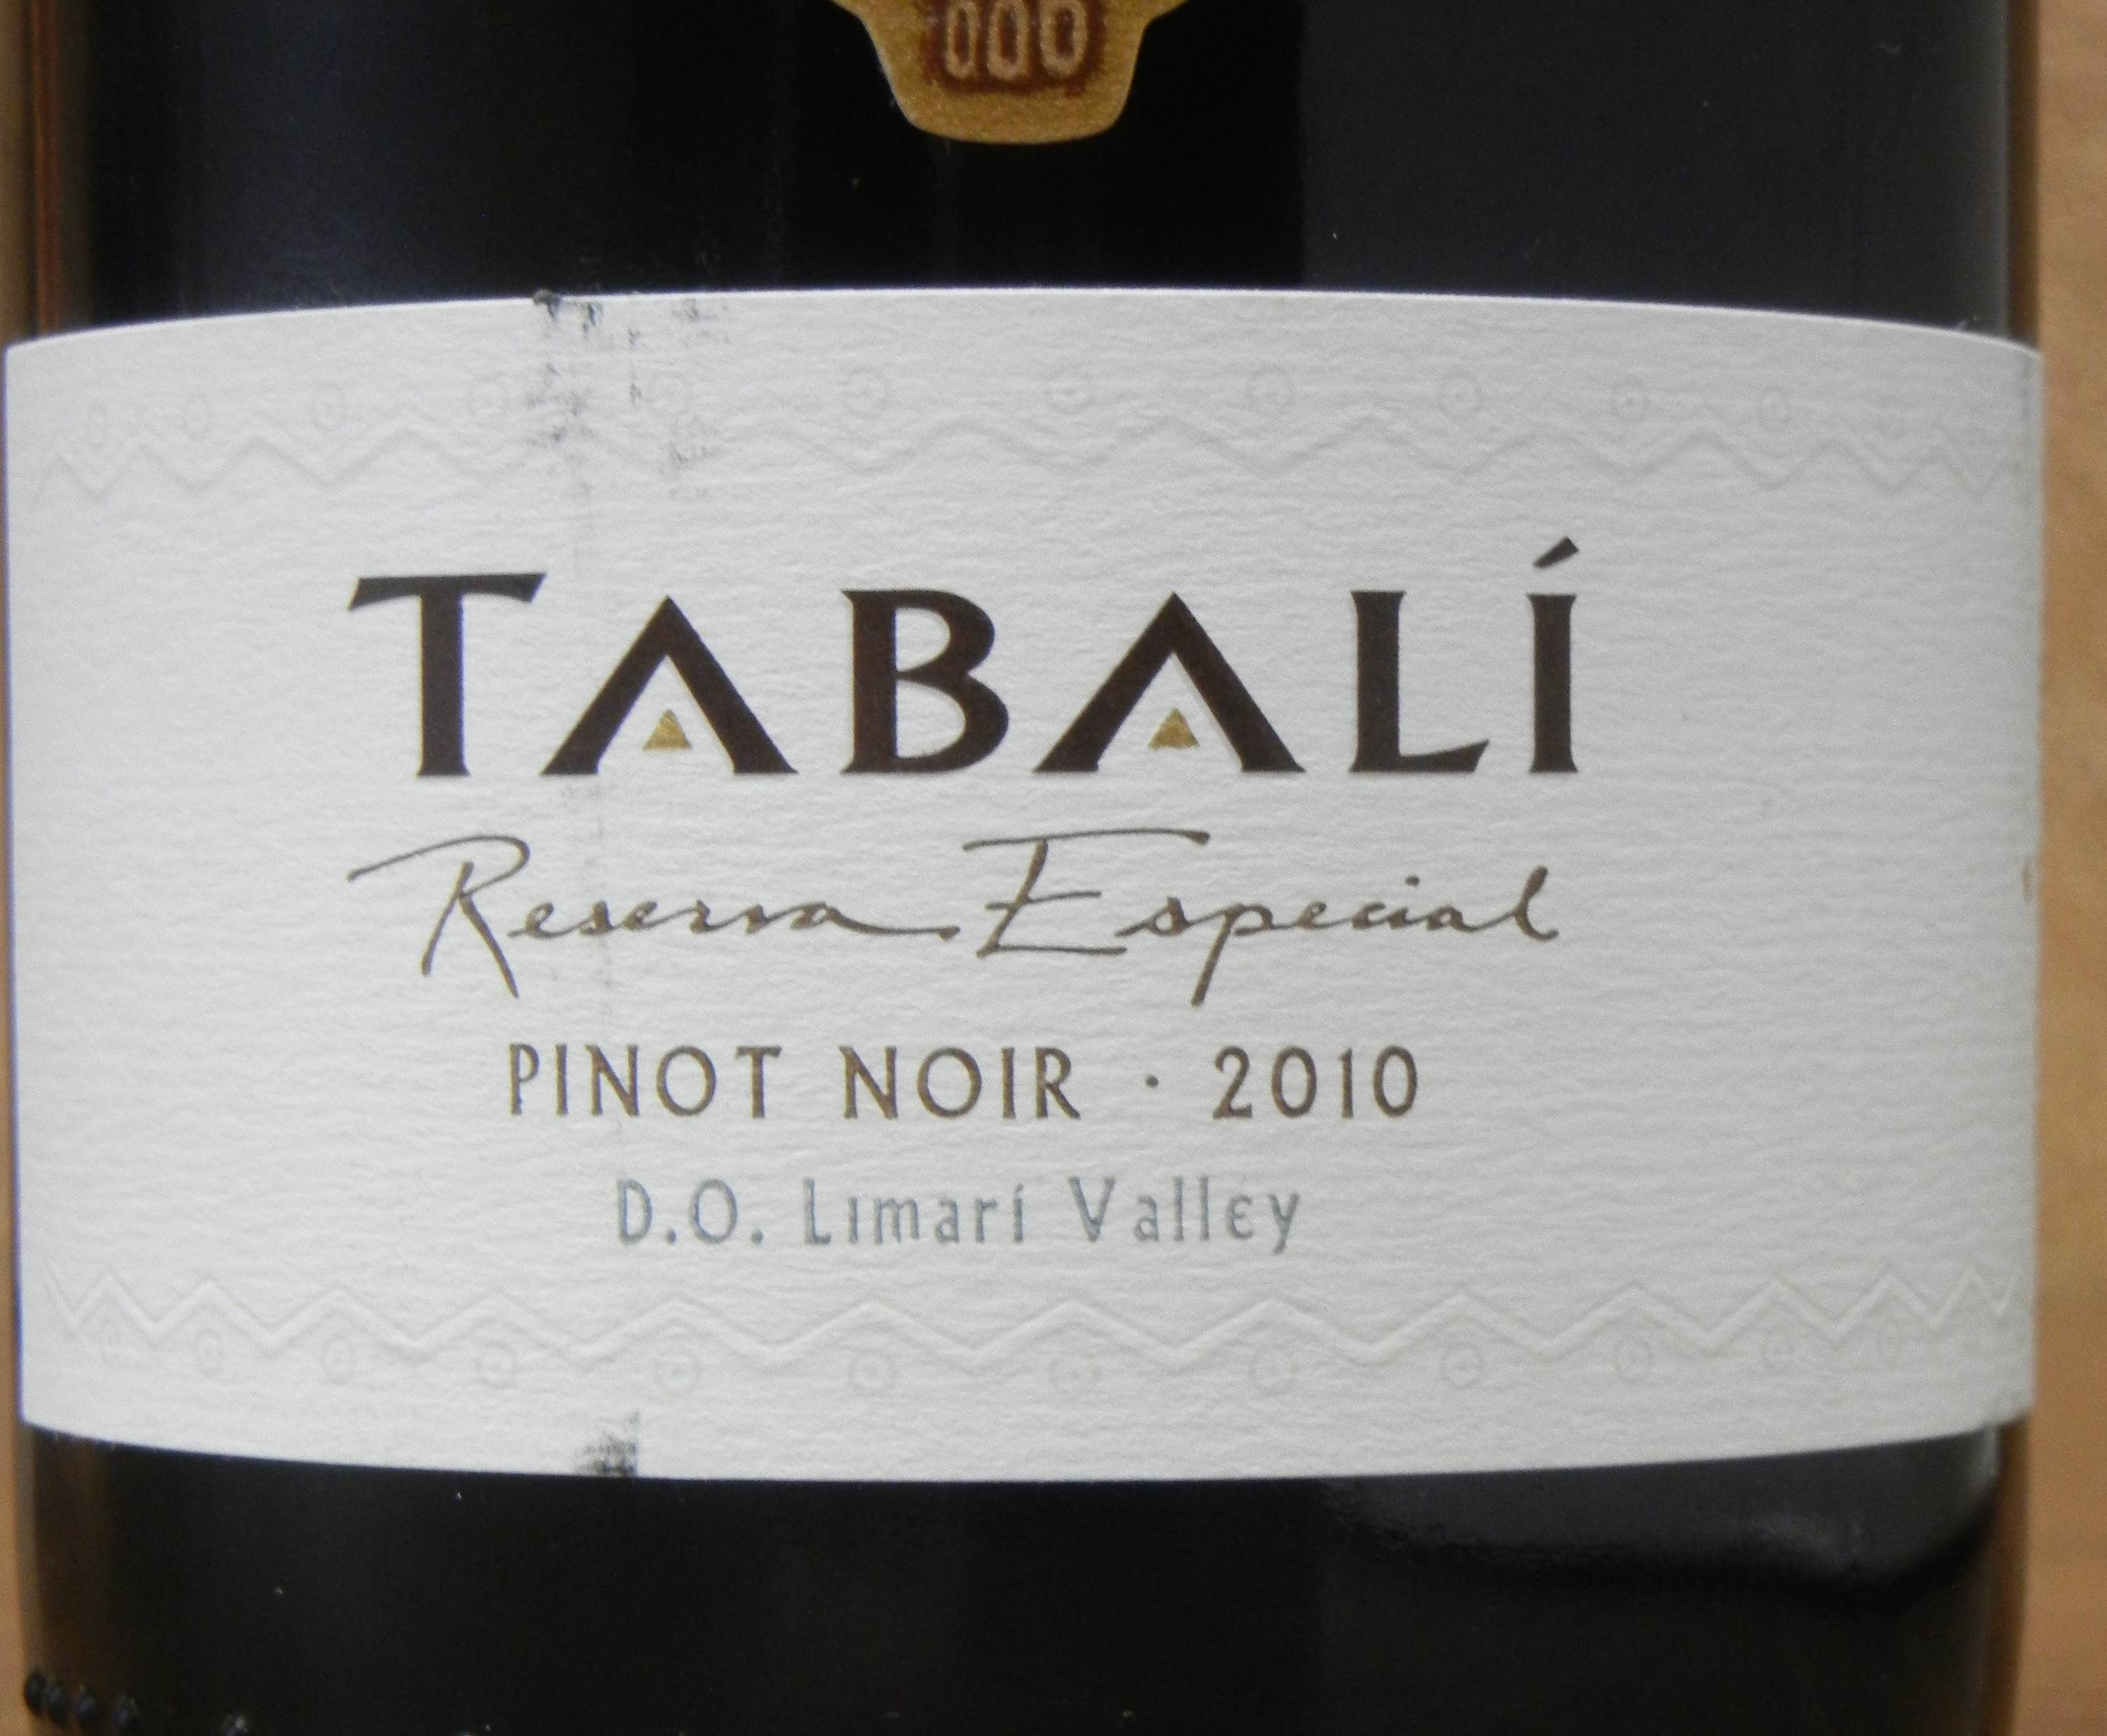 Tabali Pinot Noir 2010 Label - BC Pinot Noir Tasting Review 10